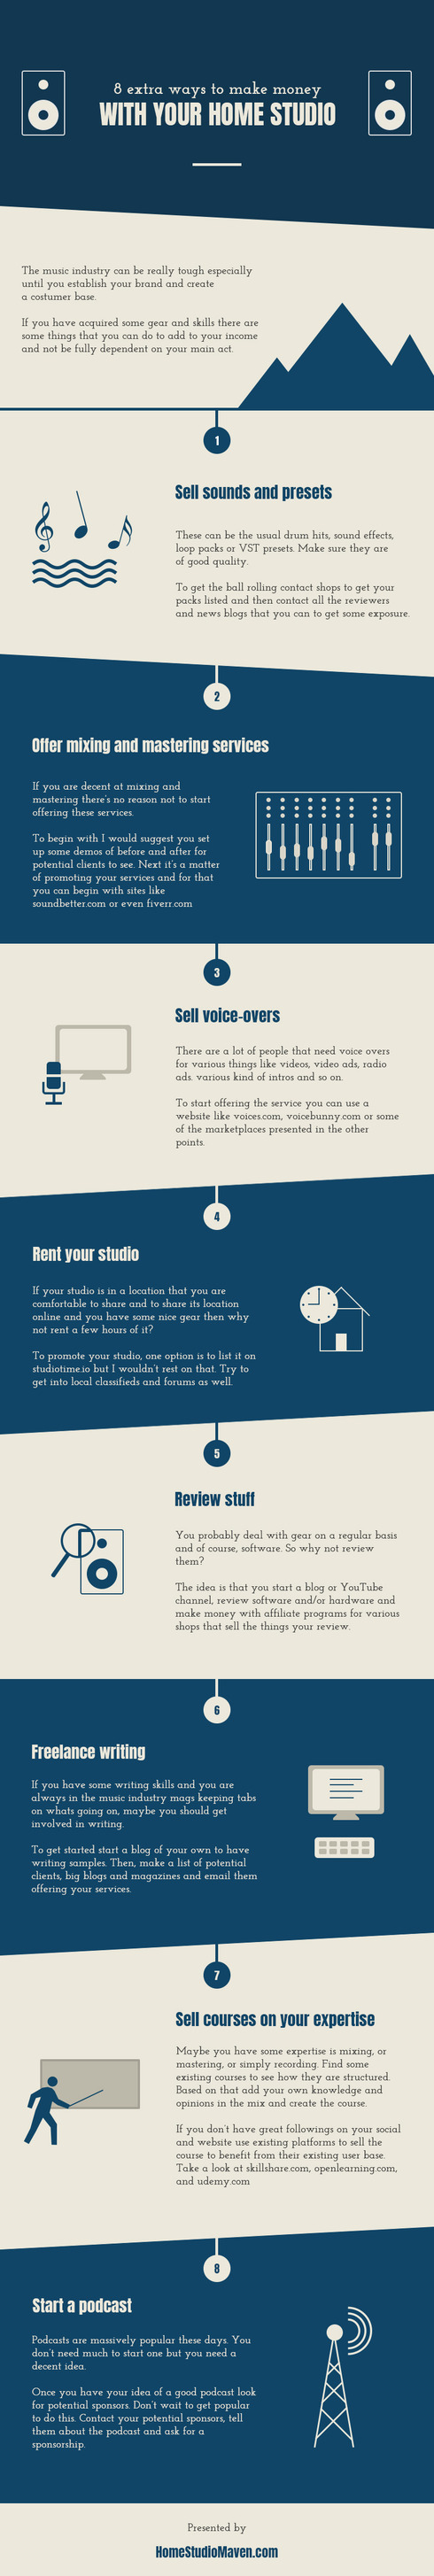 Got Gear Or Skills? Here Are 8 Other Ways To Make Money With Them [Infographic]